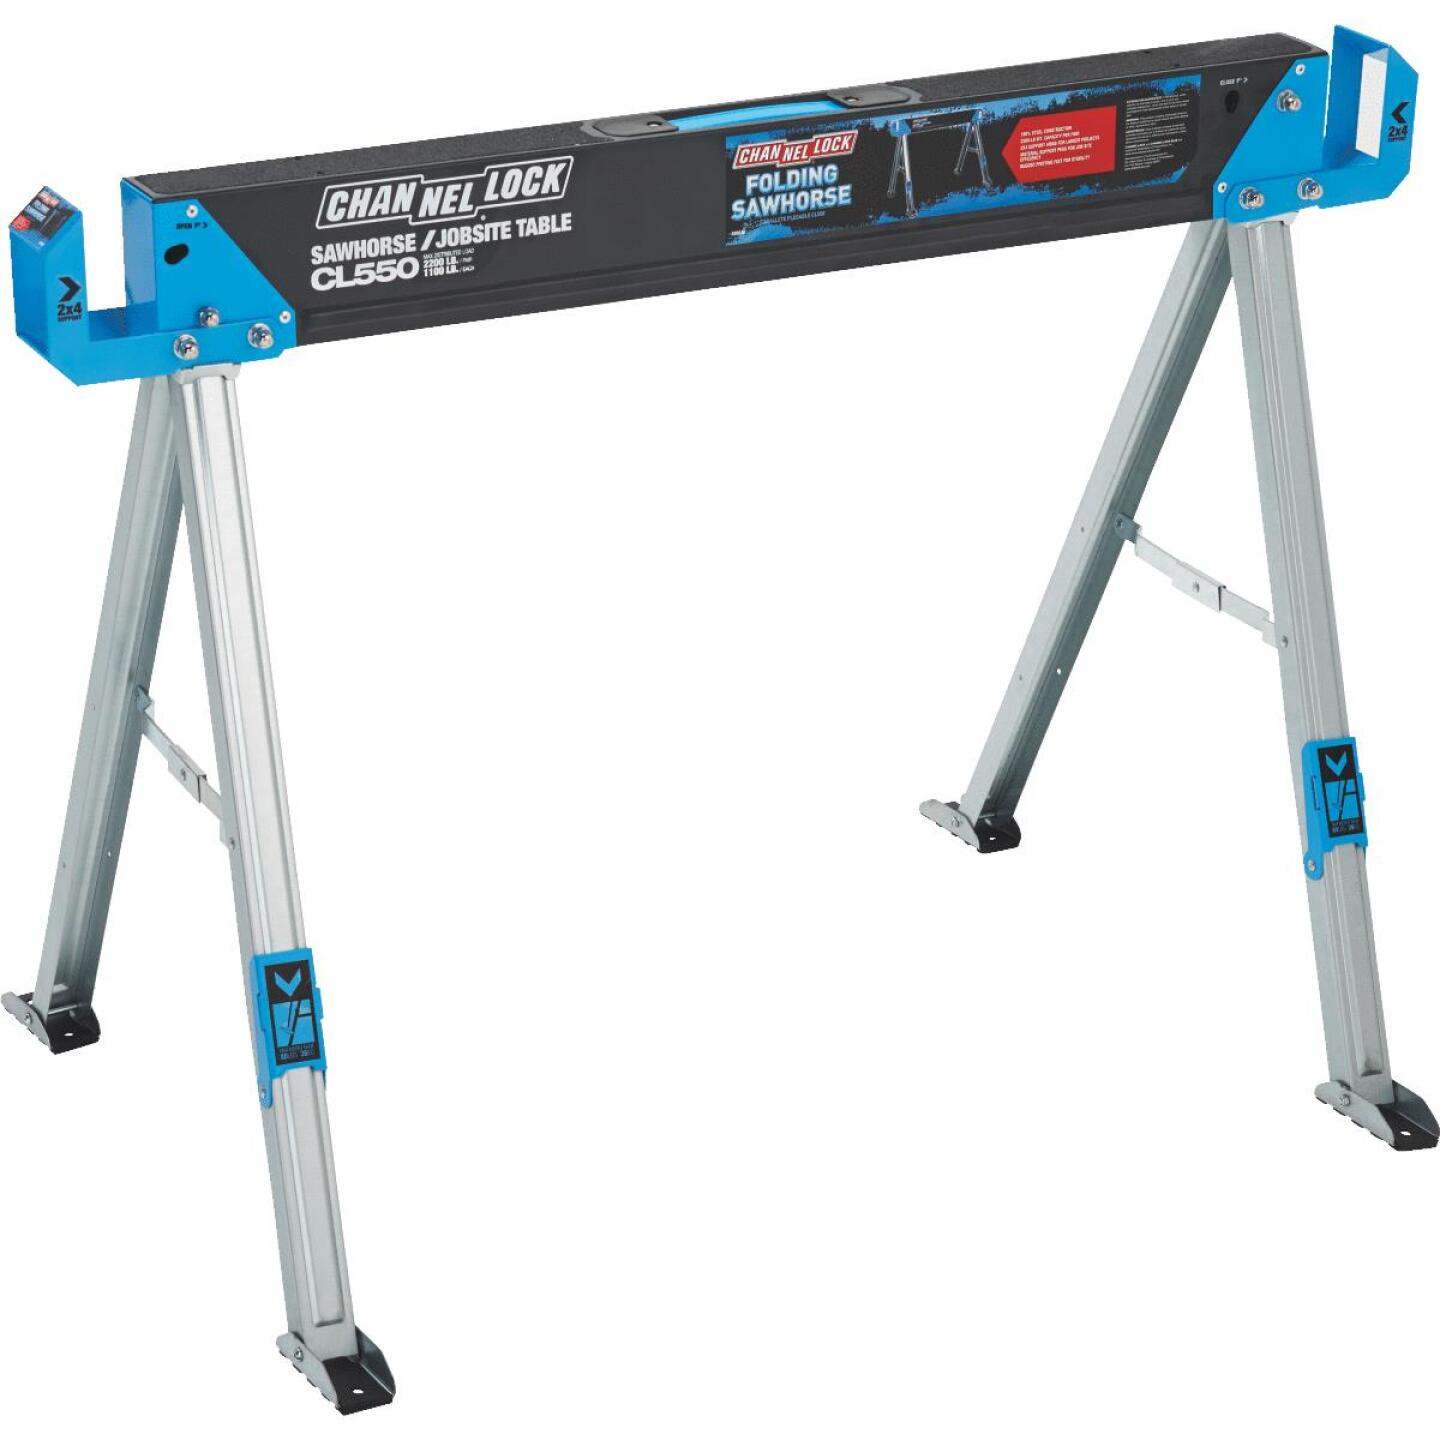 Channellock 46-1/2 In. L Steel Folding Sawhorse, 2200 Lb. Capacity Image 2